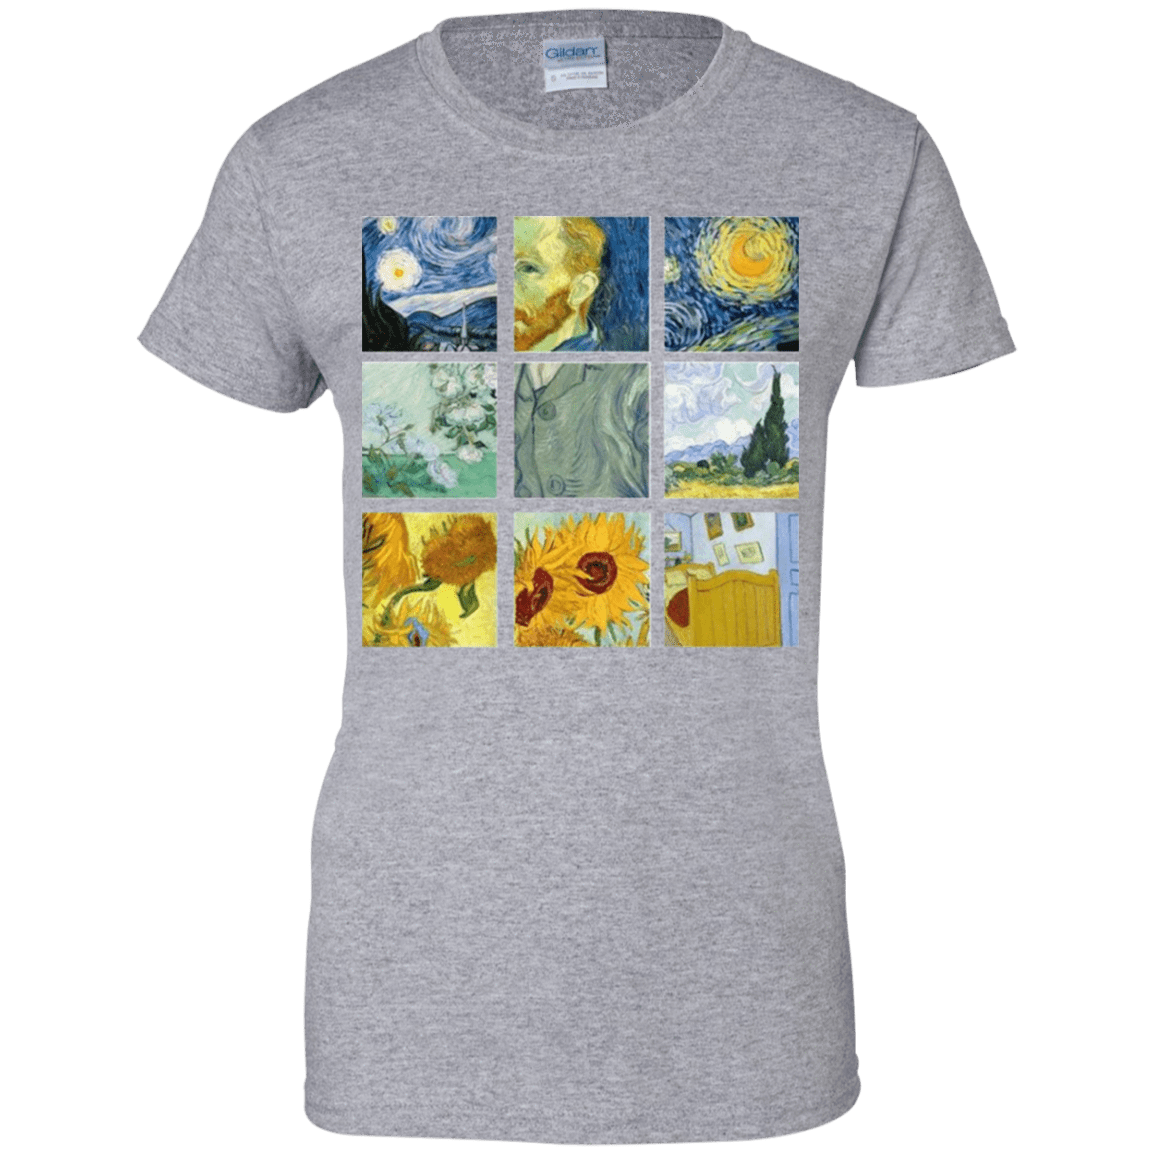 Vincent Van Gogh Collage 939-9265-73056965-44821 - Tee Ript